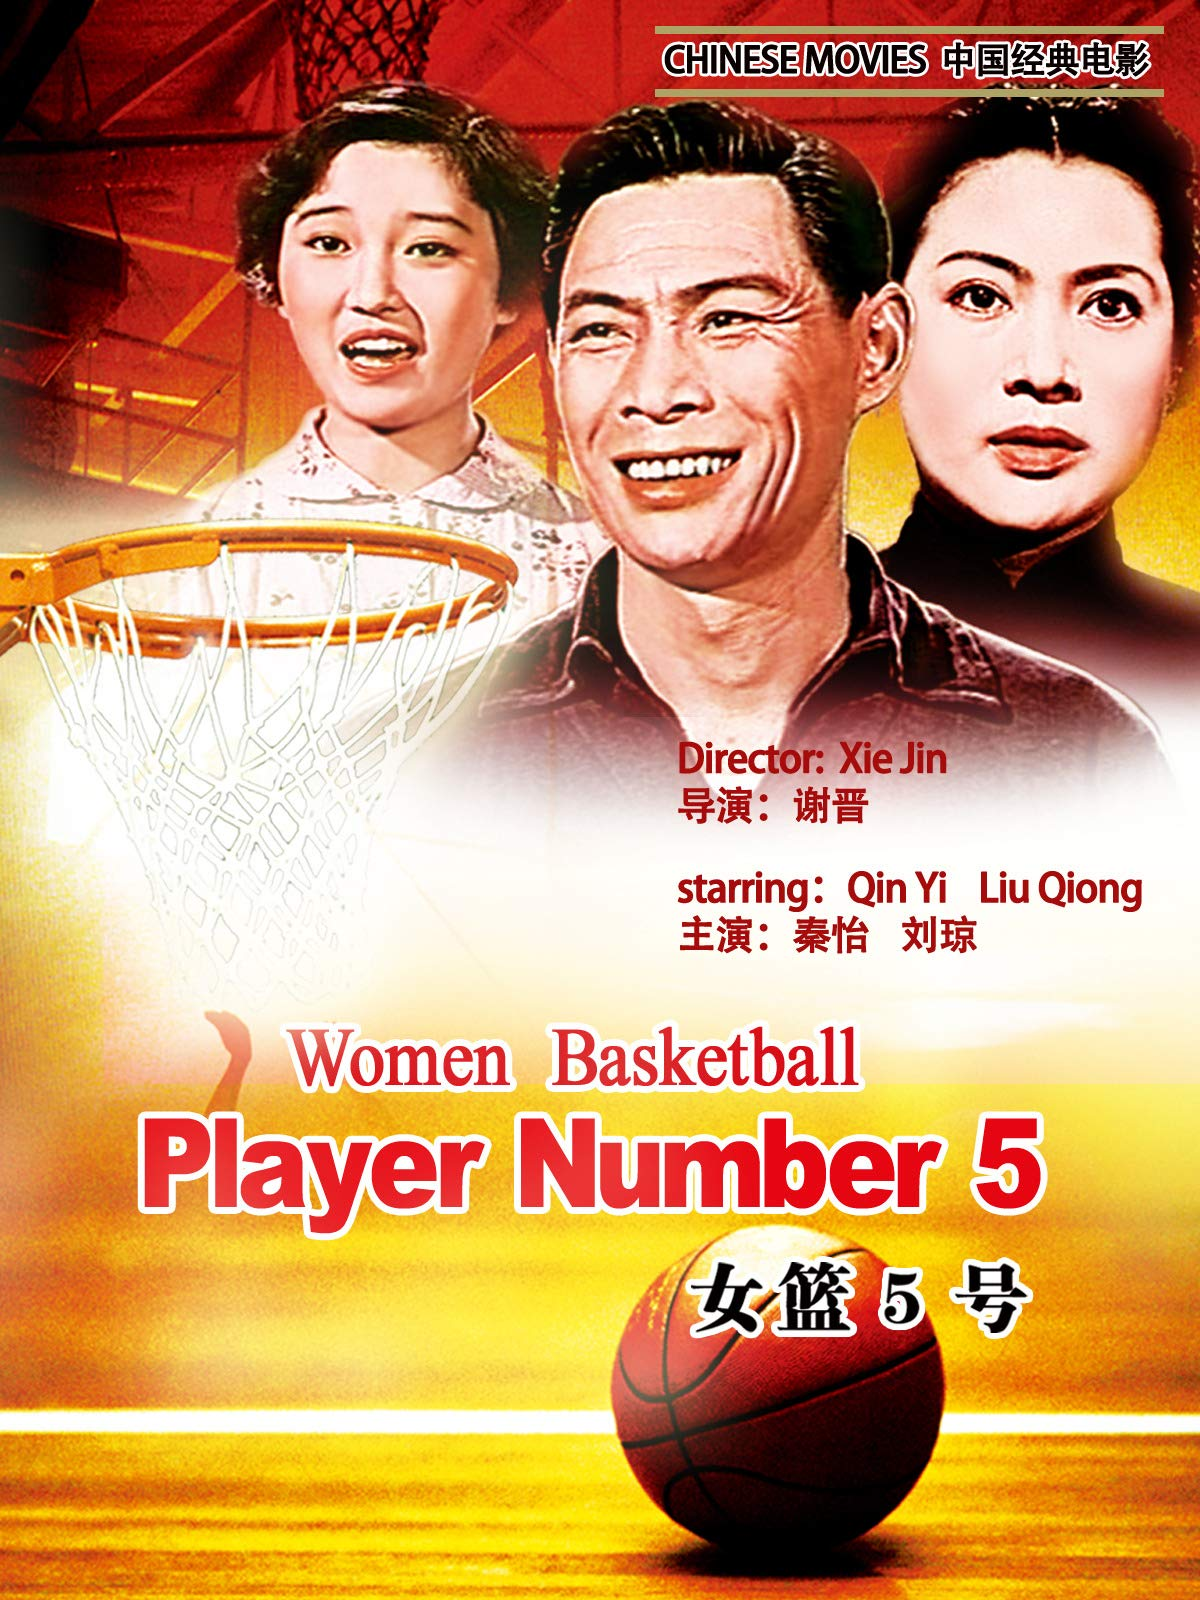 Chinese Movies-Women Basketball Player Number 5